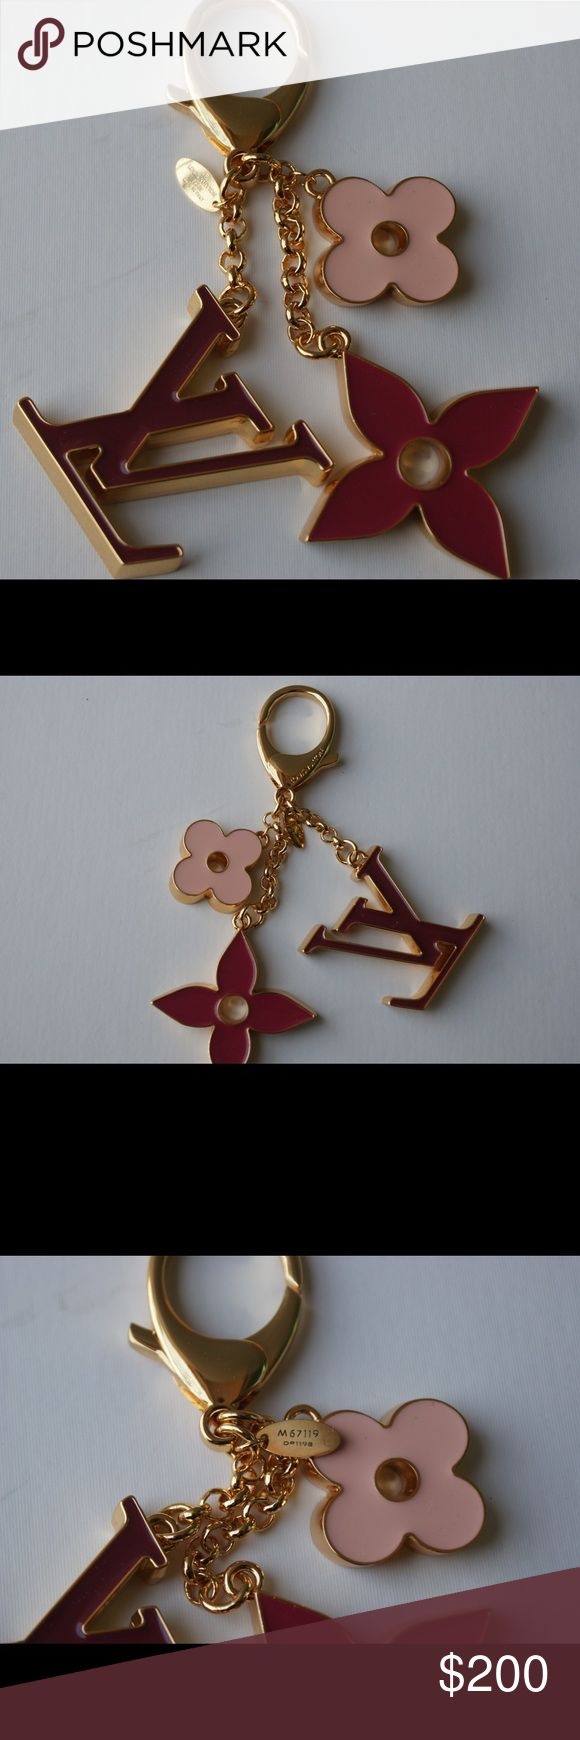 LV bag charm and key holder.LK67119 Elegant enamel is one of the hallmarks of the Fleur de Monogram Bag Charm. Its timeless celebration of the classic Monogram design is another, making it an easy match for any iconic bag of the House. Louis Vuitton Other